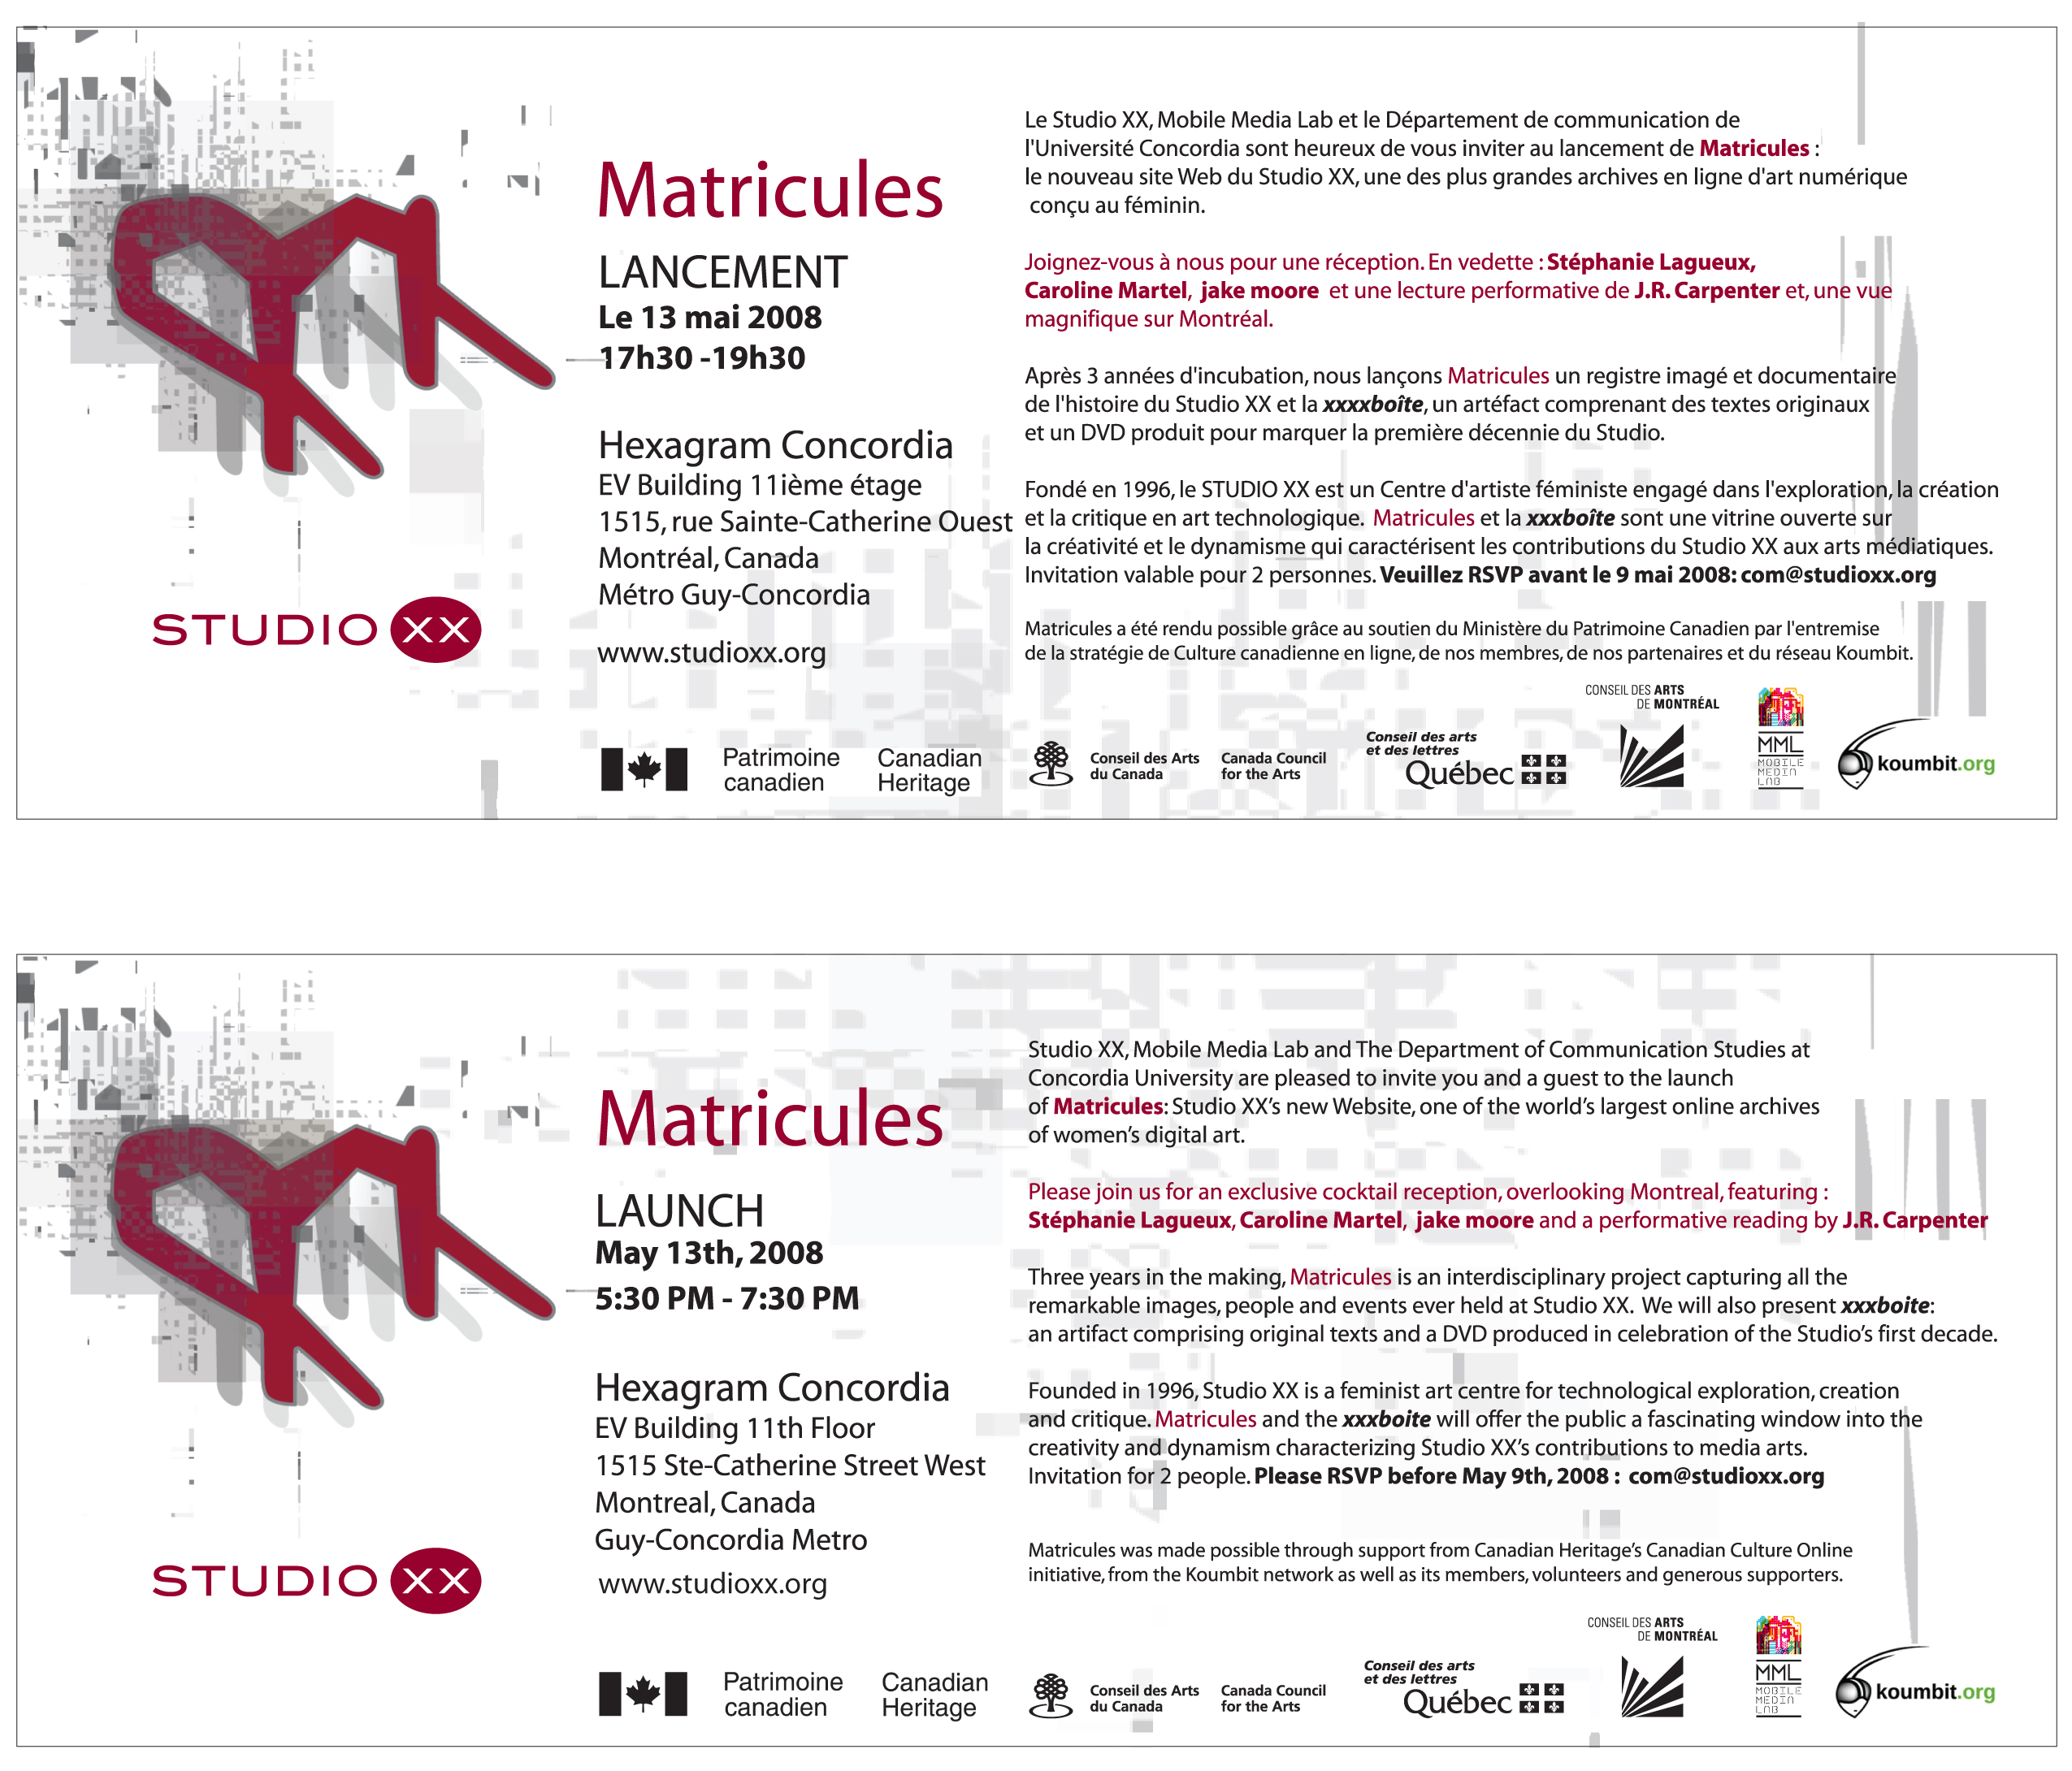 matricule launch invite